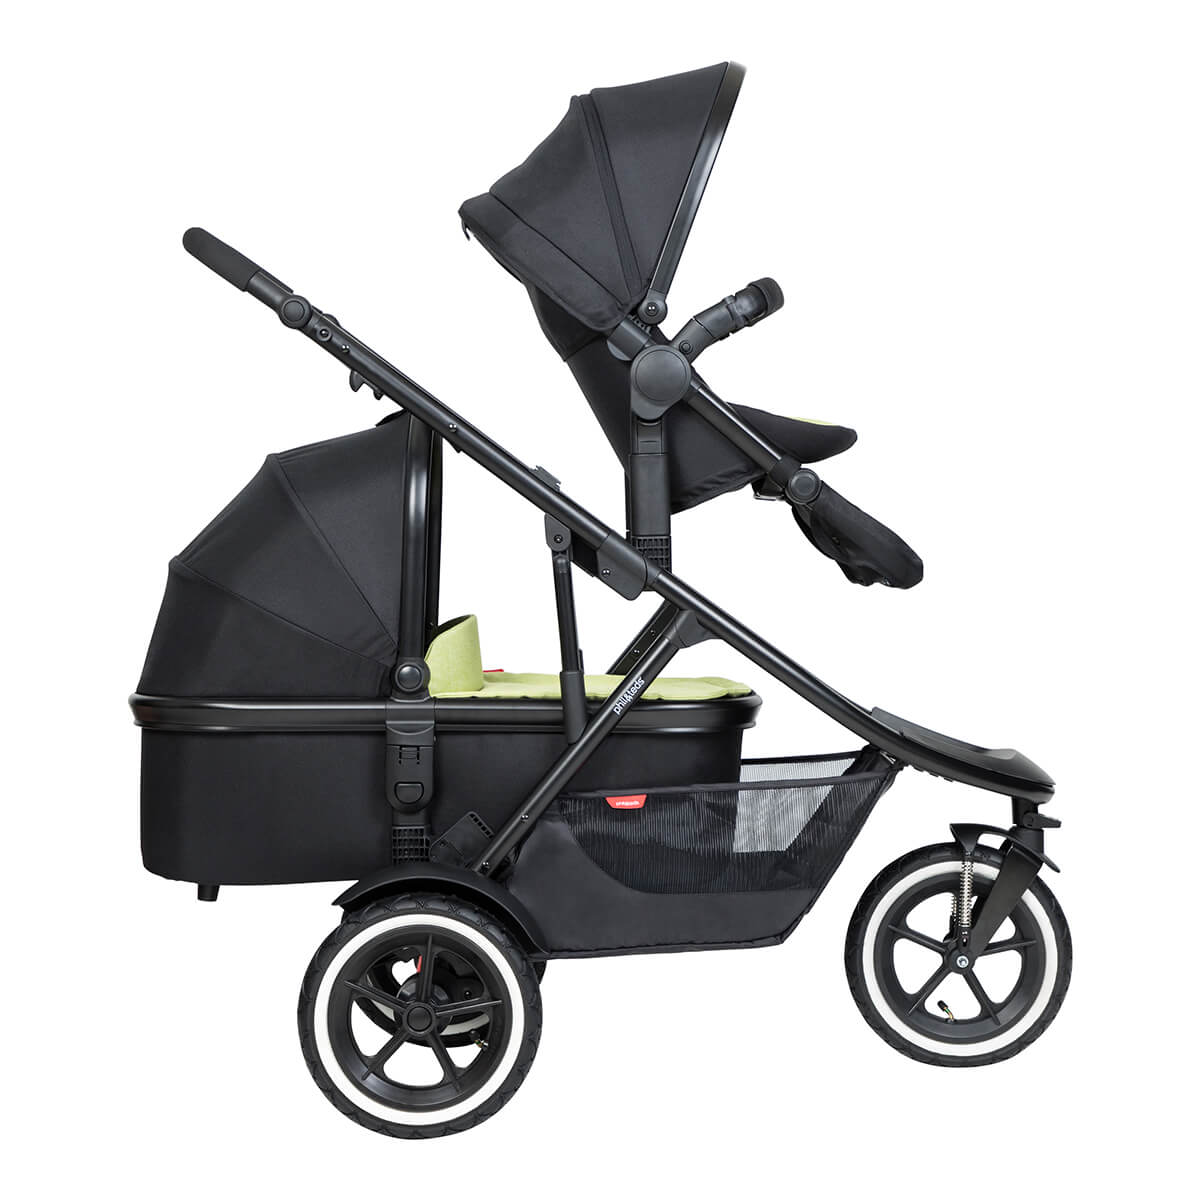 https://cdn.accentuate.io/4513462255712/19440099688632/philteds-sport-buggy-with-double-kit-extended-clip-and-snug-carrycot-side-view-v1626486498367.jpg?1200x1200